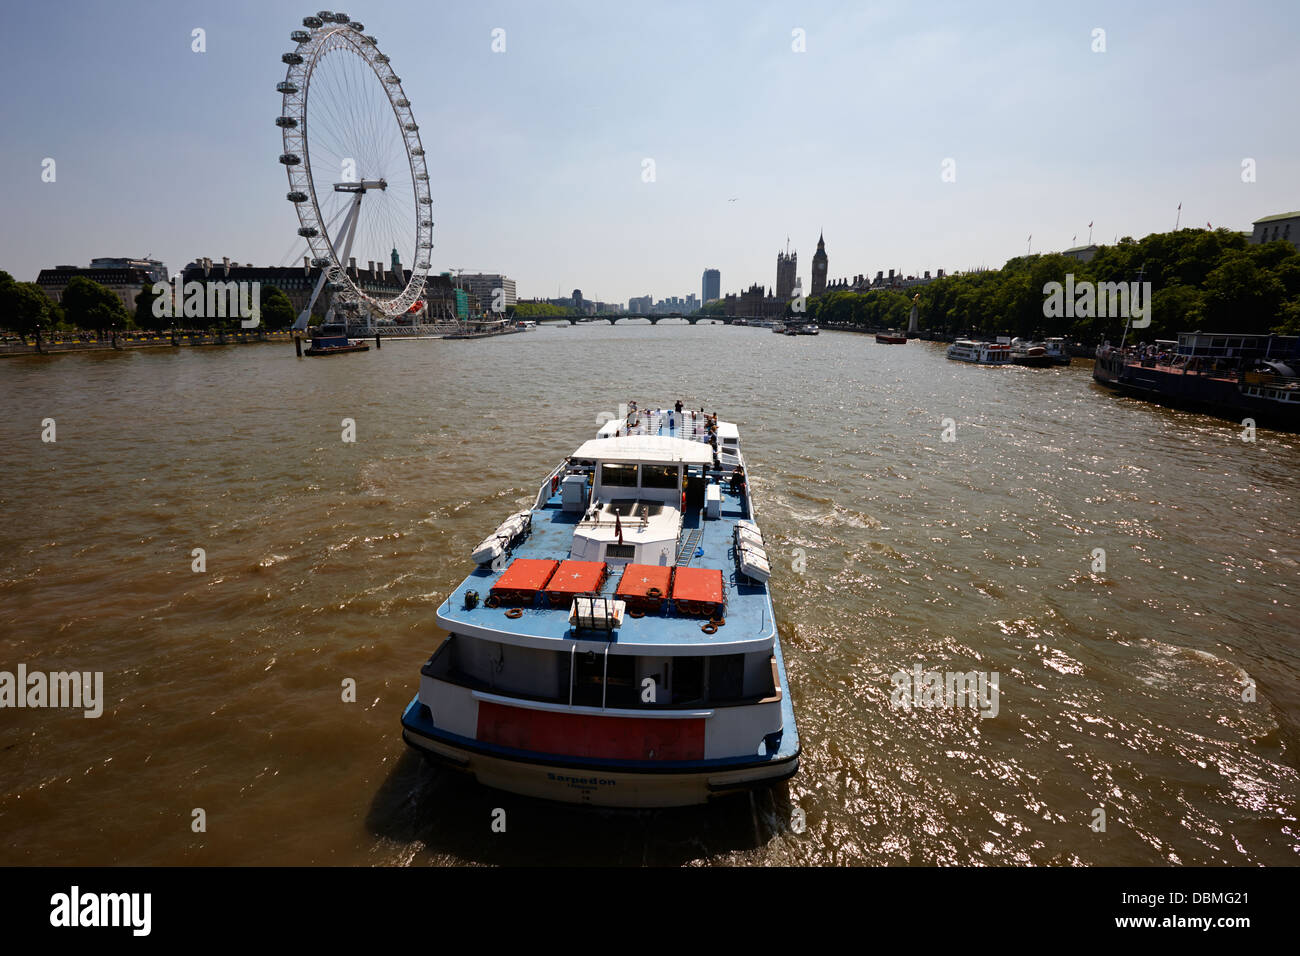 crown river cruises sarpedon boat on the river thames London England UK - Stock Image